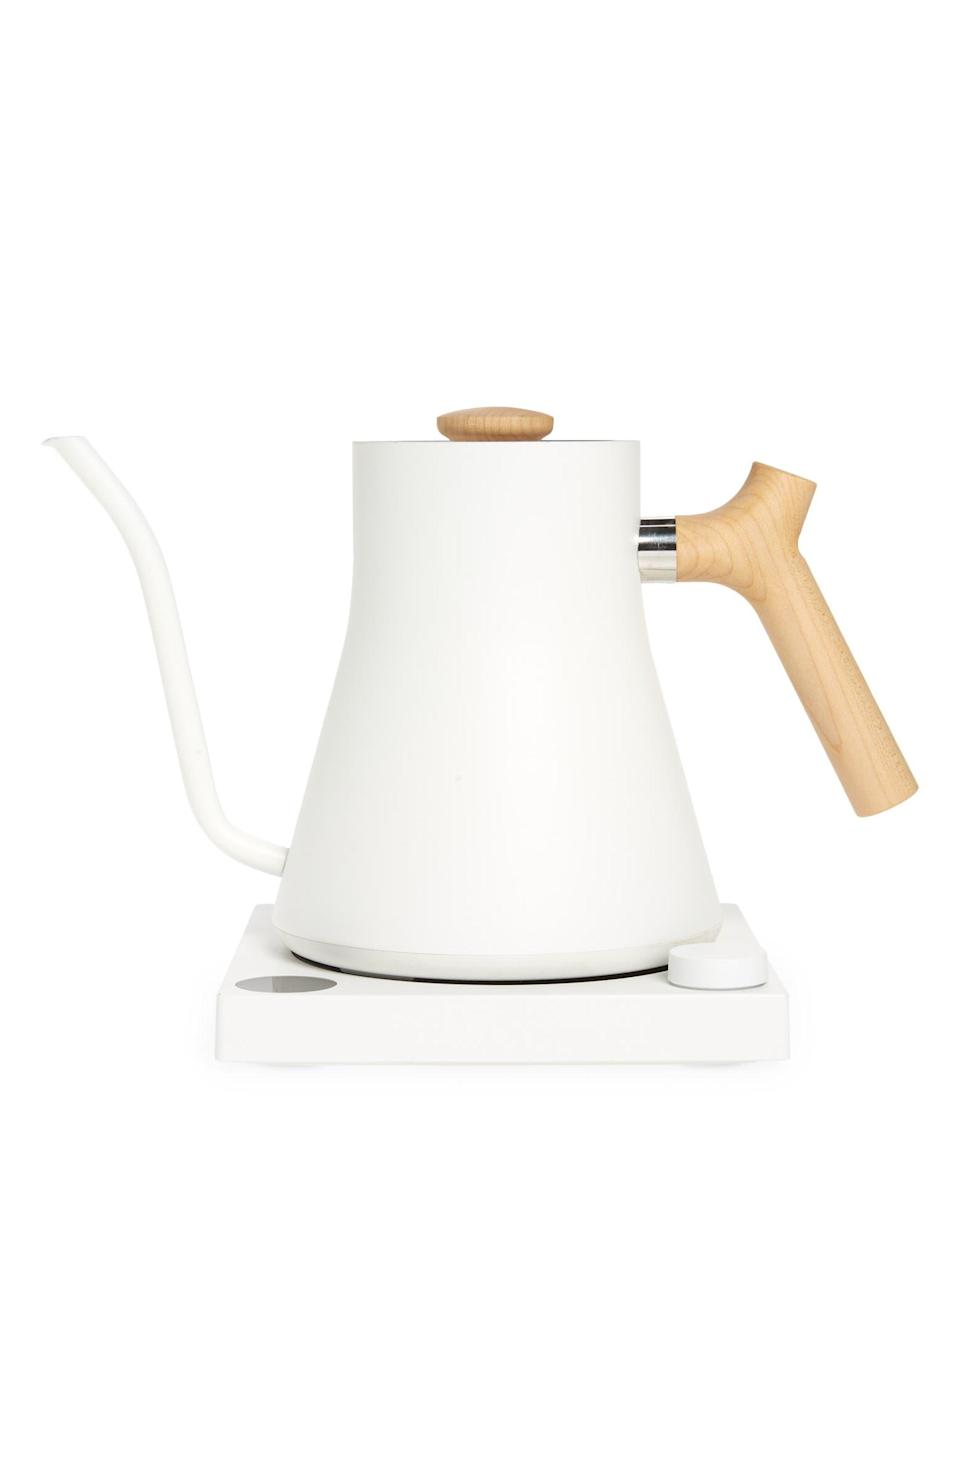 """<strong><h2>Fellow Stagg EKG Electric Kettle</h2></strong><br><strong>SELLING FAST</strong><br>Stagg's trendy kettles would tempt us on looks alone — but, lucky for us (and our morning coffee), they work well, too. A Nordstrom-customer favorite, this sleek kitchen essential features several temperature control options so you can get brew your morning beverage exactly how you like it.<br><br><em>Shop more <a href=""""https://go.skimresources.com?id=30283X879131&xs=1&url=https%3A%2F%2Fwww.nordstrom.com%2Fbrowse%2Fanniversary-sale%2Fall%3Fcampaign%3D0728publicgnpt1%26jid%3Dj012165-15573%26cid%3D00000%26cm_sp%3Dmerch-_-anniversary_15573_j012165-_-catpromo_corp_persnav_shop%26%3D%26postalCodeAvailability%3D10543%26filterByProductType%3Dhome_kitchen-equipment&sref=https%3A%2F%2Fwww.refinery29.com%2Fen-us%2Fnordstrom-anniversary-sale-best-sellers"""" rel=""""nofollow noopener"""" target=""""_blank"""" data-ylk=""""slk:Nordstrom Anniversary Sale kitchen equipment"""" class=""""link rapid-noclick-resp"""">Nordstrom Anniversary Sale kitchen equipment</a></em><br><br><strong>Fellow</strong> Stagg EKG Electric Kettle, $, available at <a href=""""https://go.skimresources.com/?id=30283X879131&url=https%3A%2F%2Fwww.nordstrom.com%2Fs%2Ffellow-stagg-ekg-electric-kettle%2F5887568"""" rel=""""nofollow noopener"""" target=""""_blank"""" data-ylk=""""slk:Nordstrom"""" class=""""link rapid-noclick-resp"""">Nordstrom</a>"""